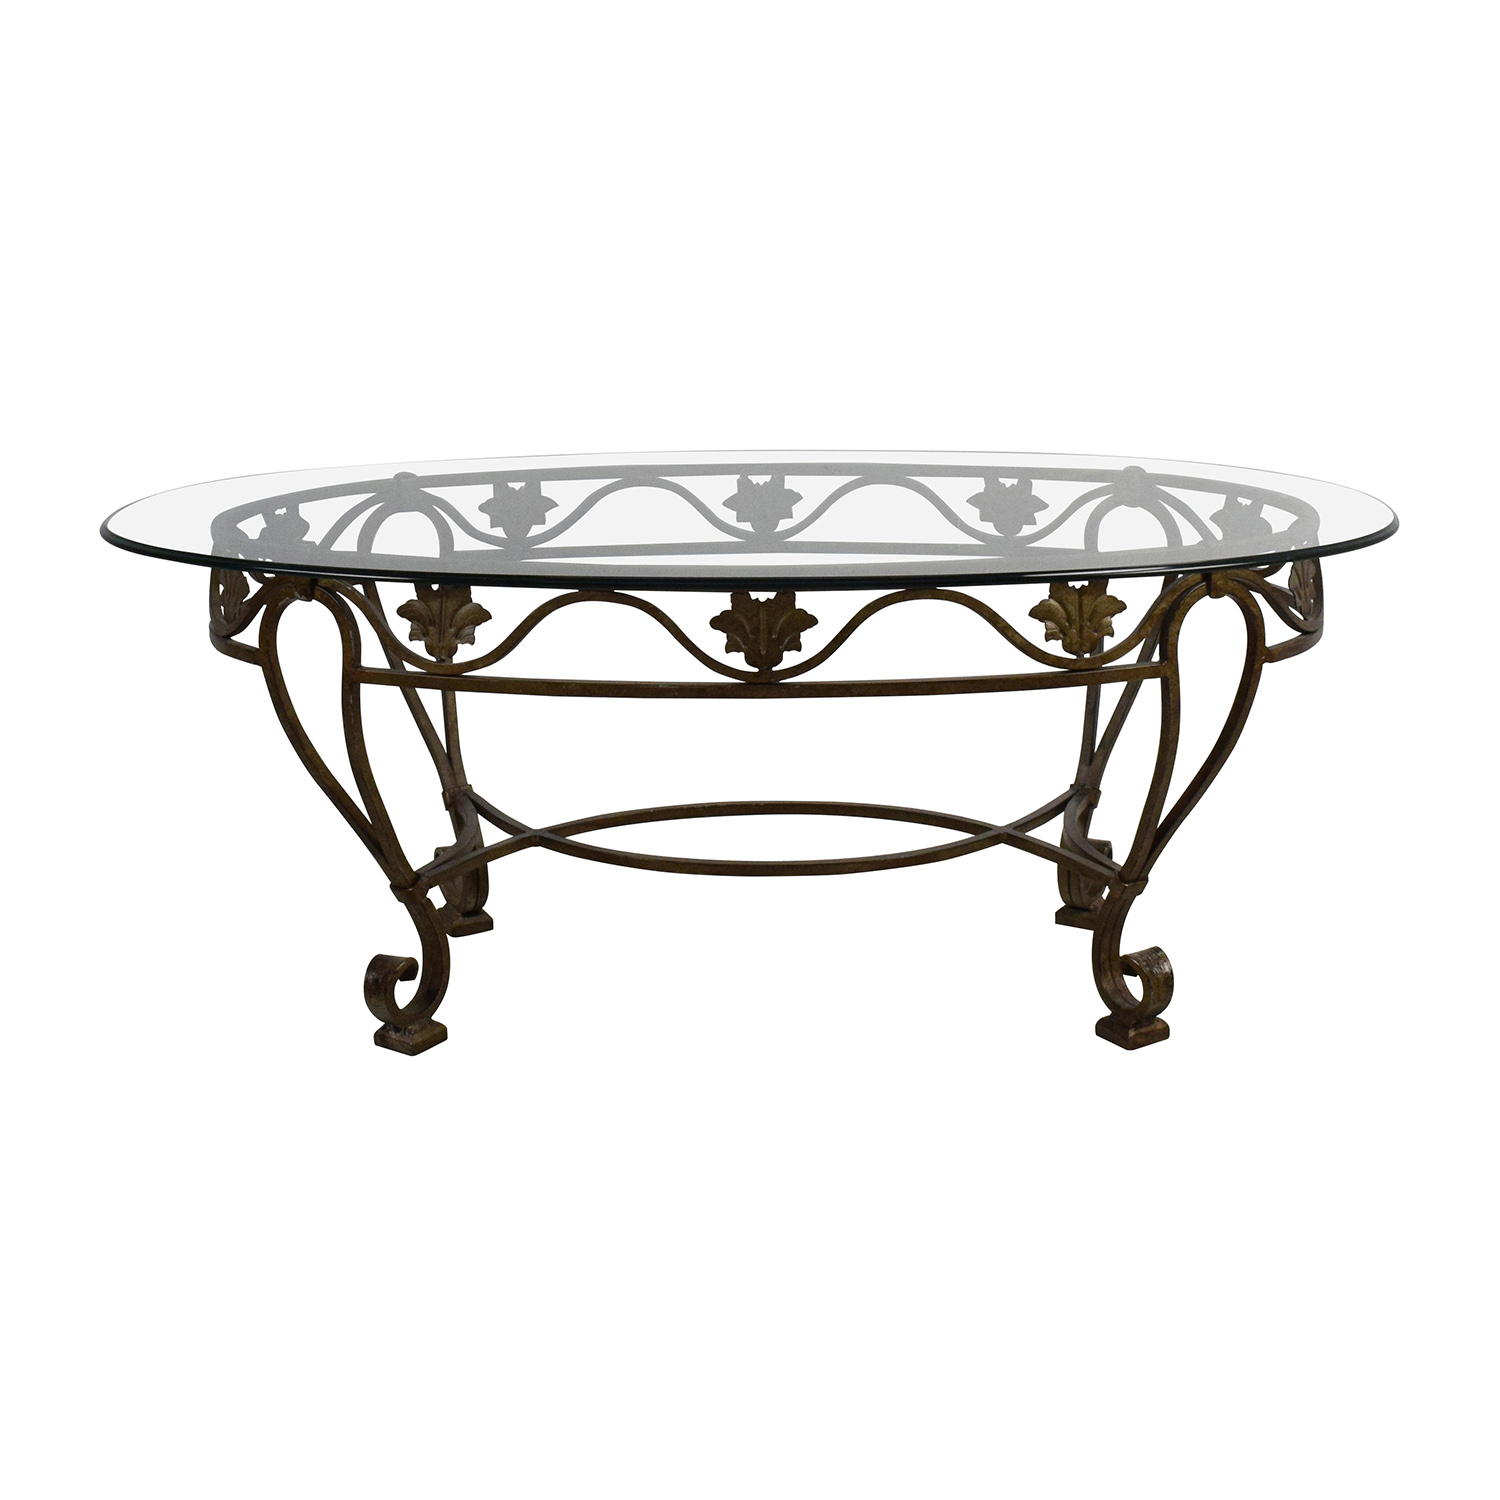 Antique Coffee Tables With Glass Top Best Home Design 2018